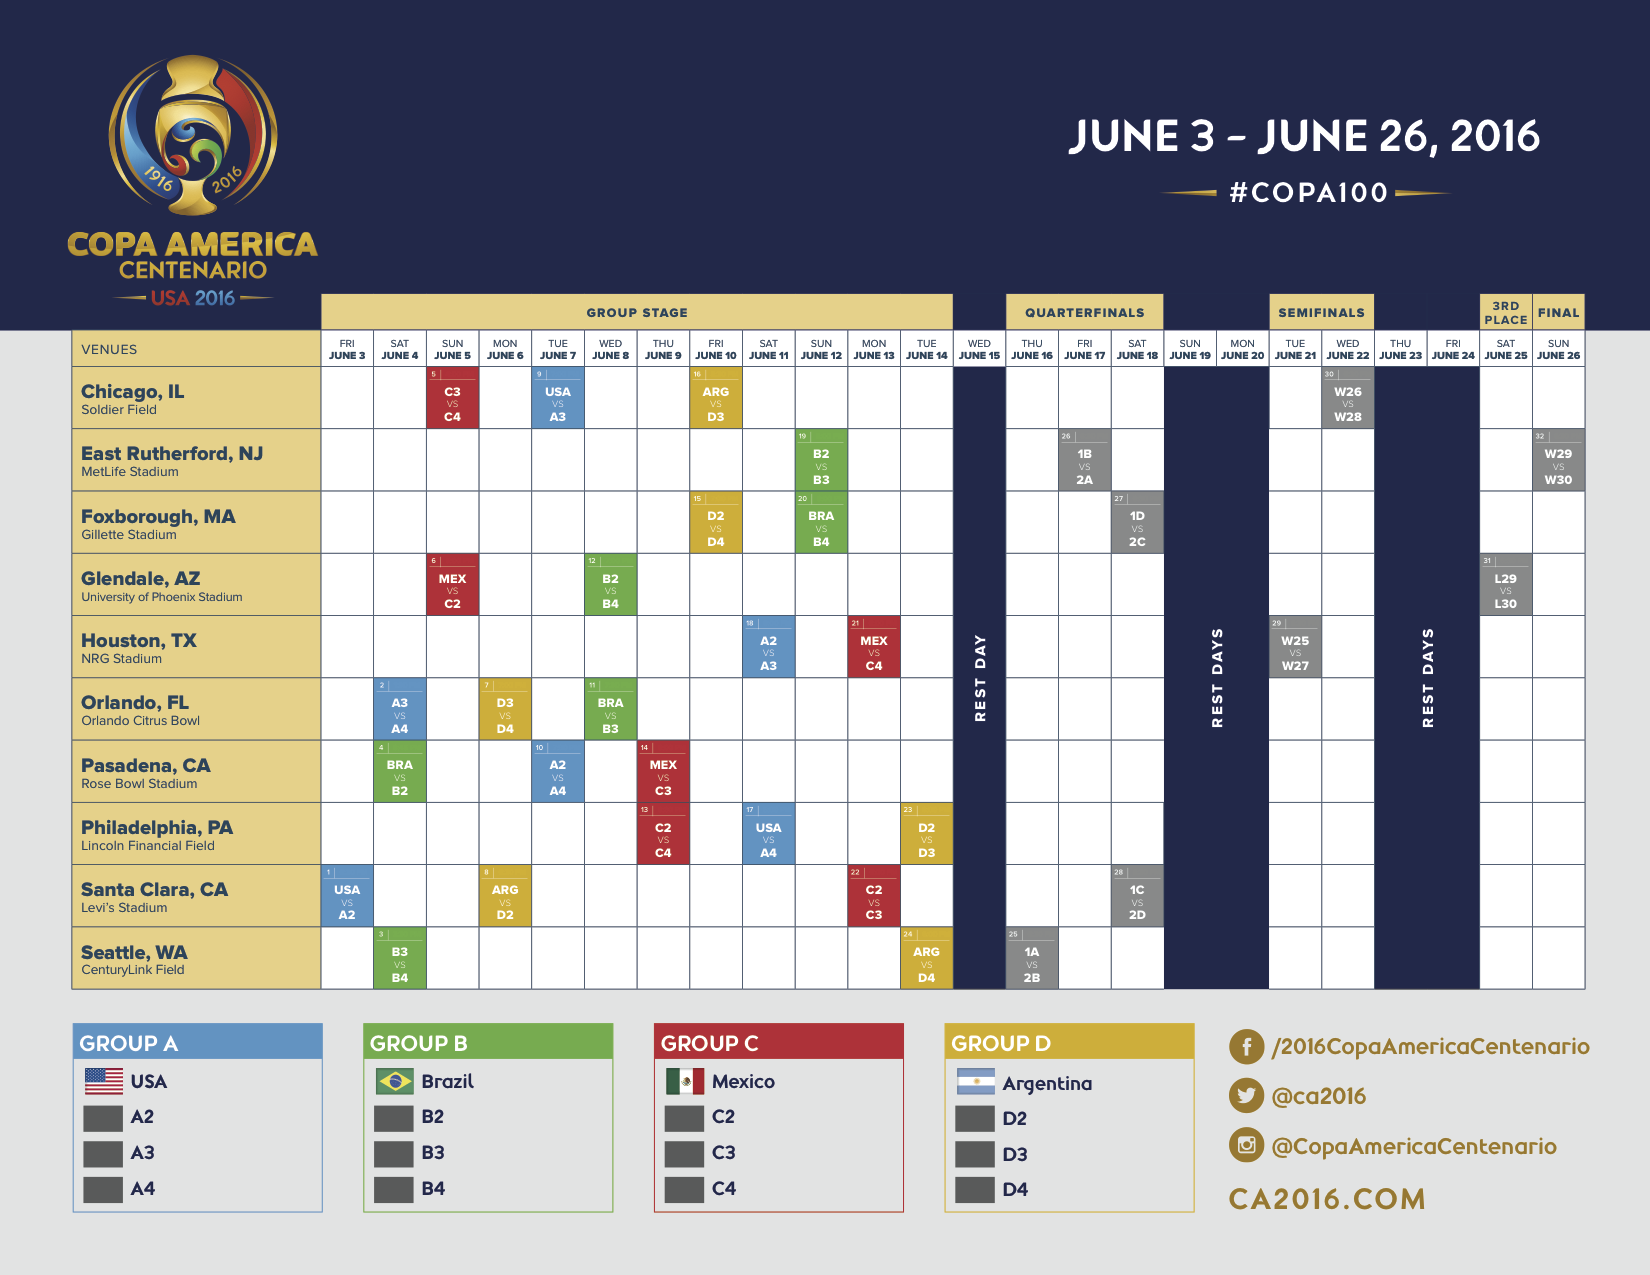 Us National Team To Open Copa America On June 3 As Tournament Schedule Is Released Copa America Centenario America Santa Clara